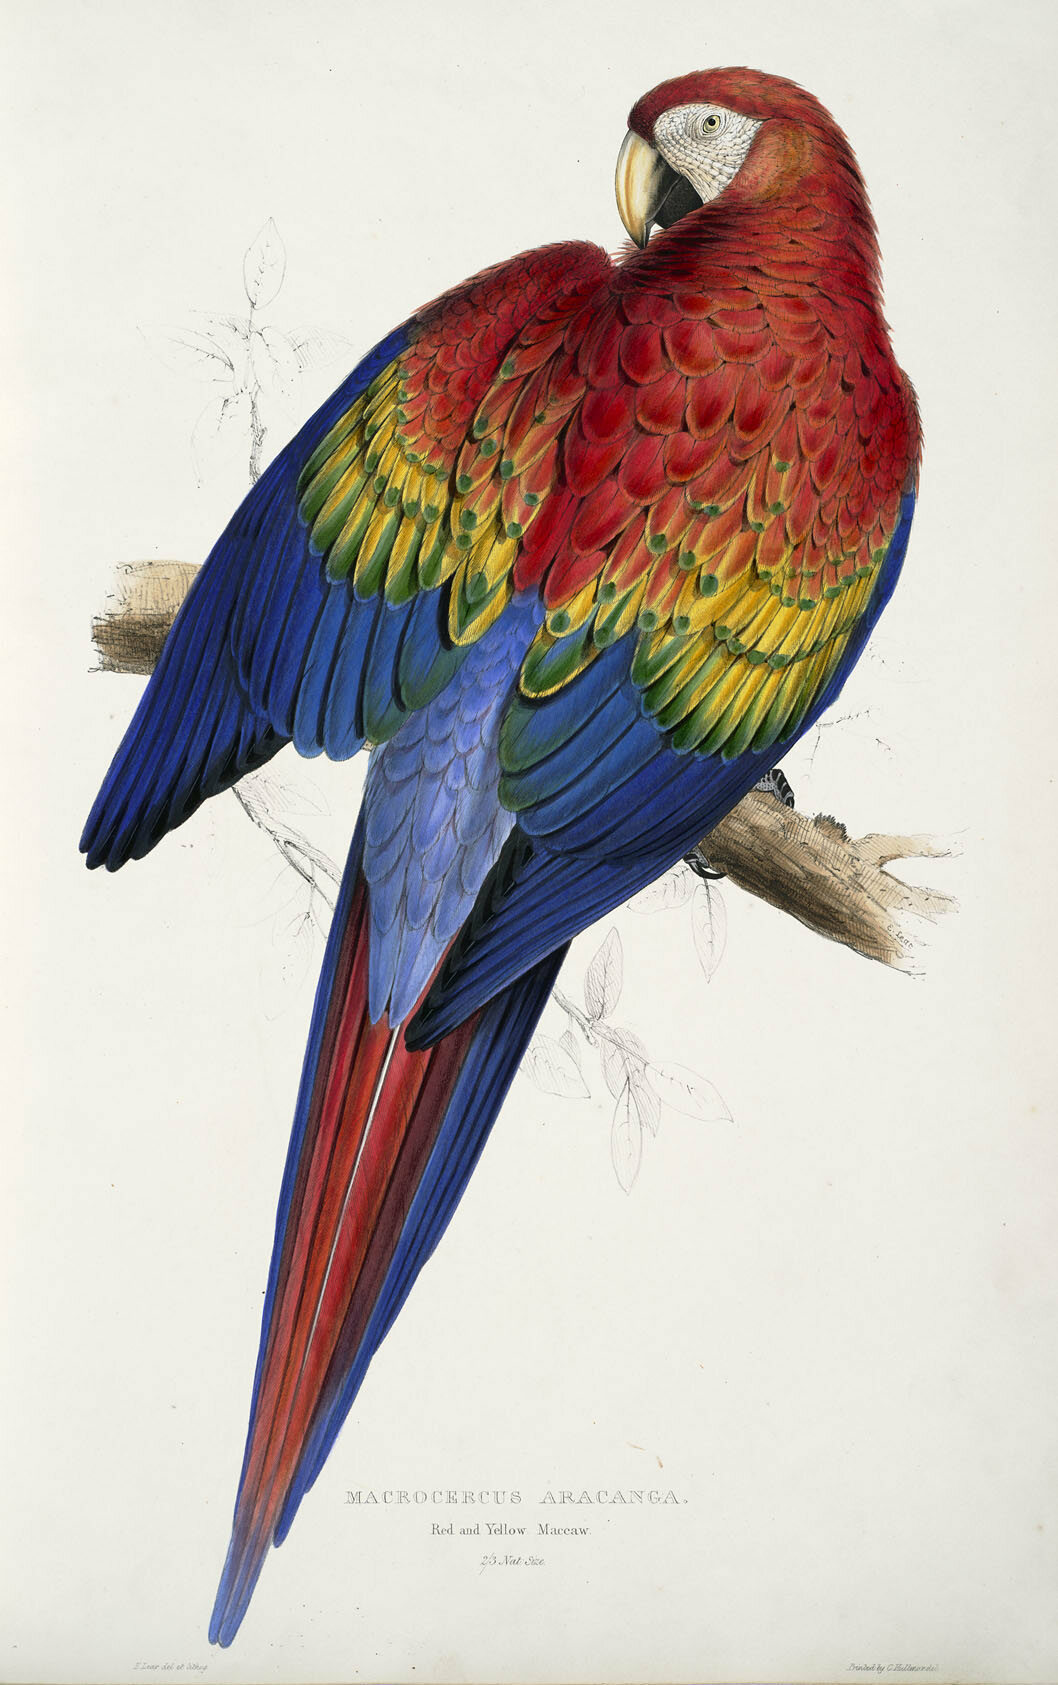 One of Lear's most critically acclaimed drawings, this red and yellow macaw appears to be slyly showing off.